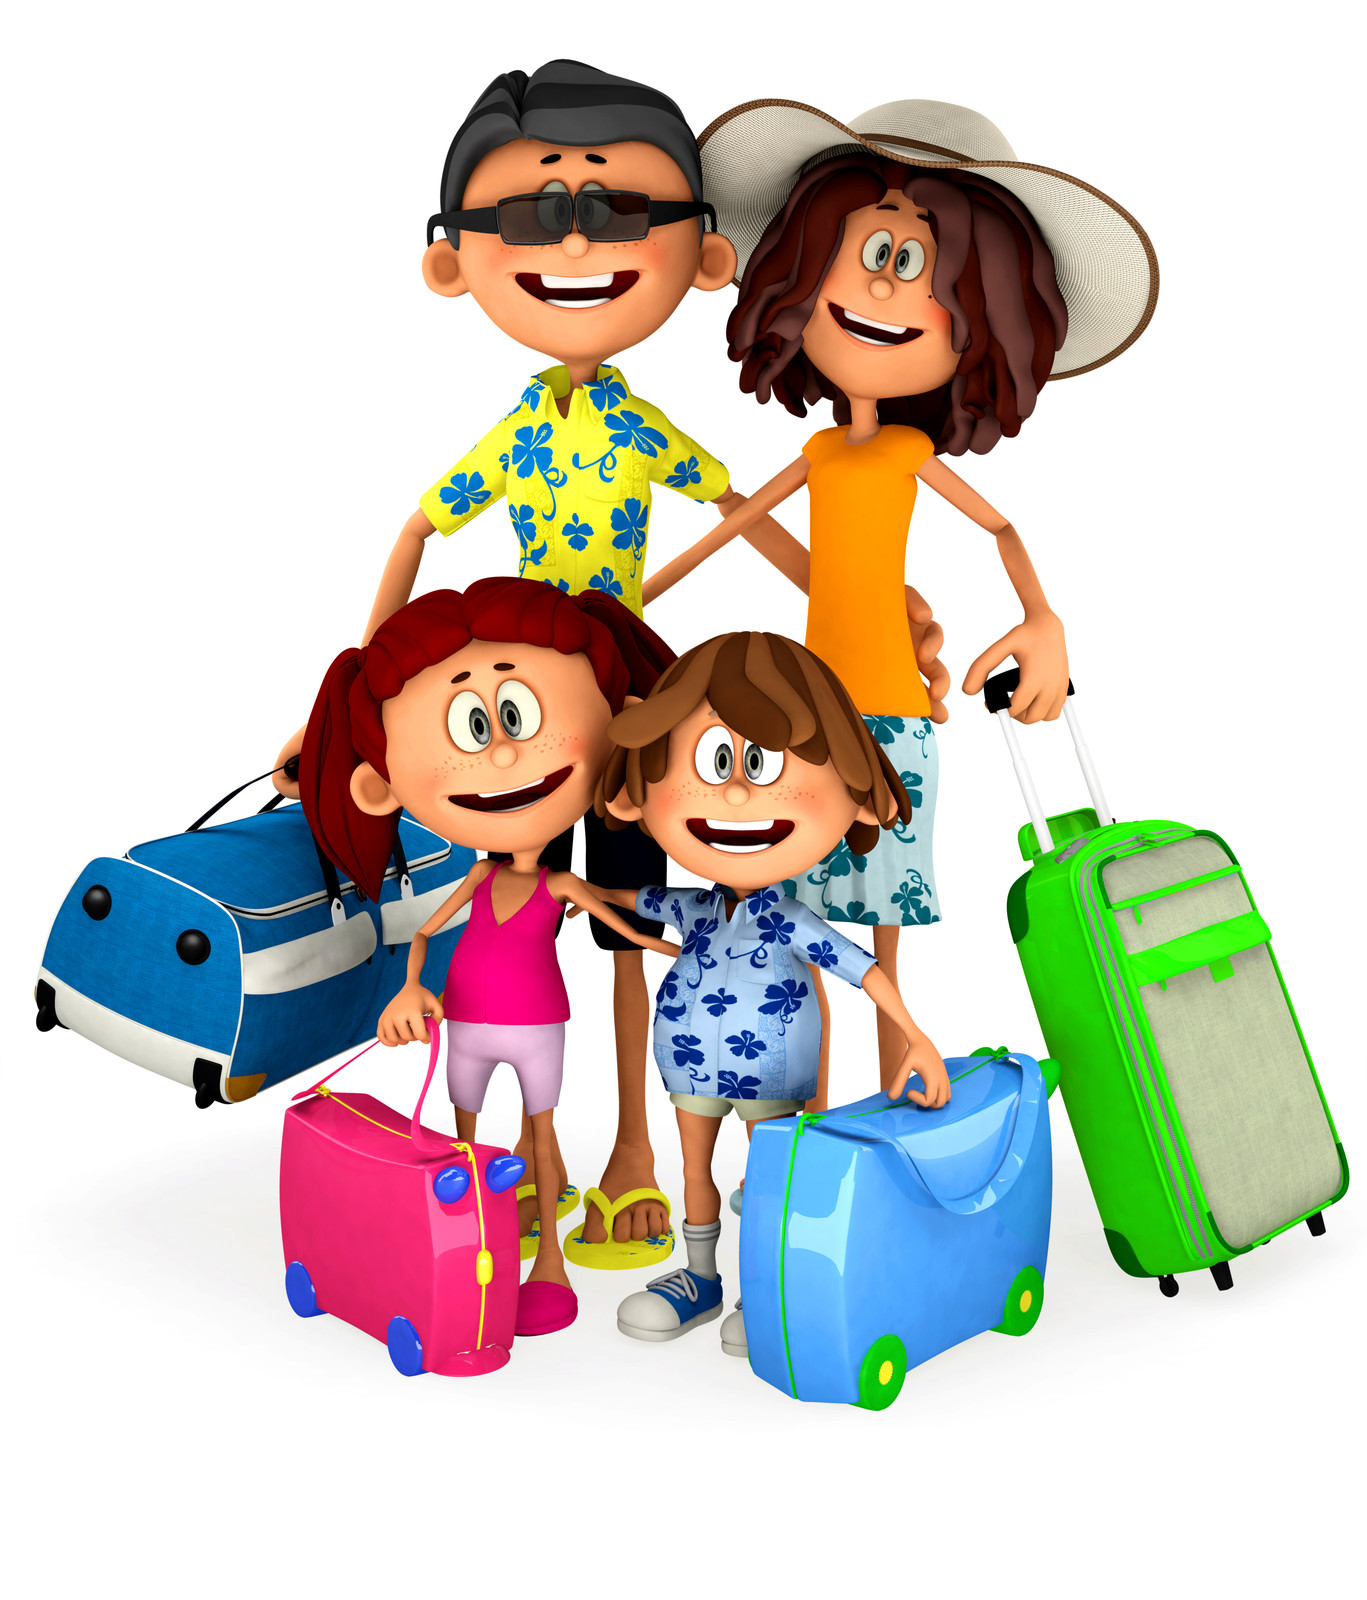 Family vacation clipart free 5 » Clipart Station.